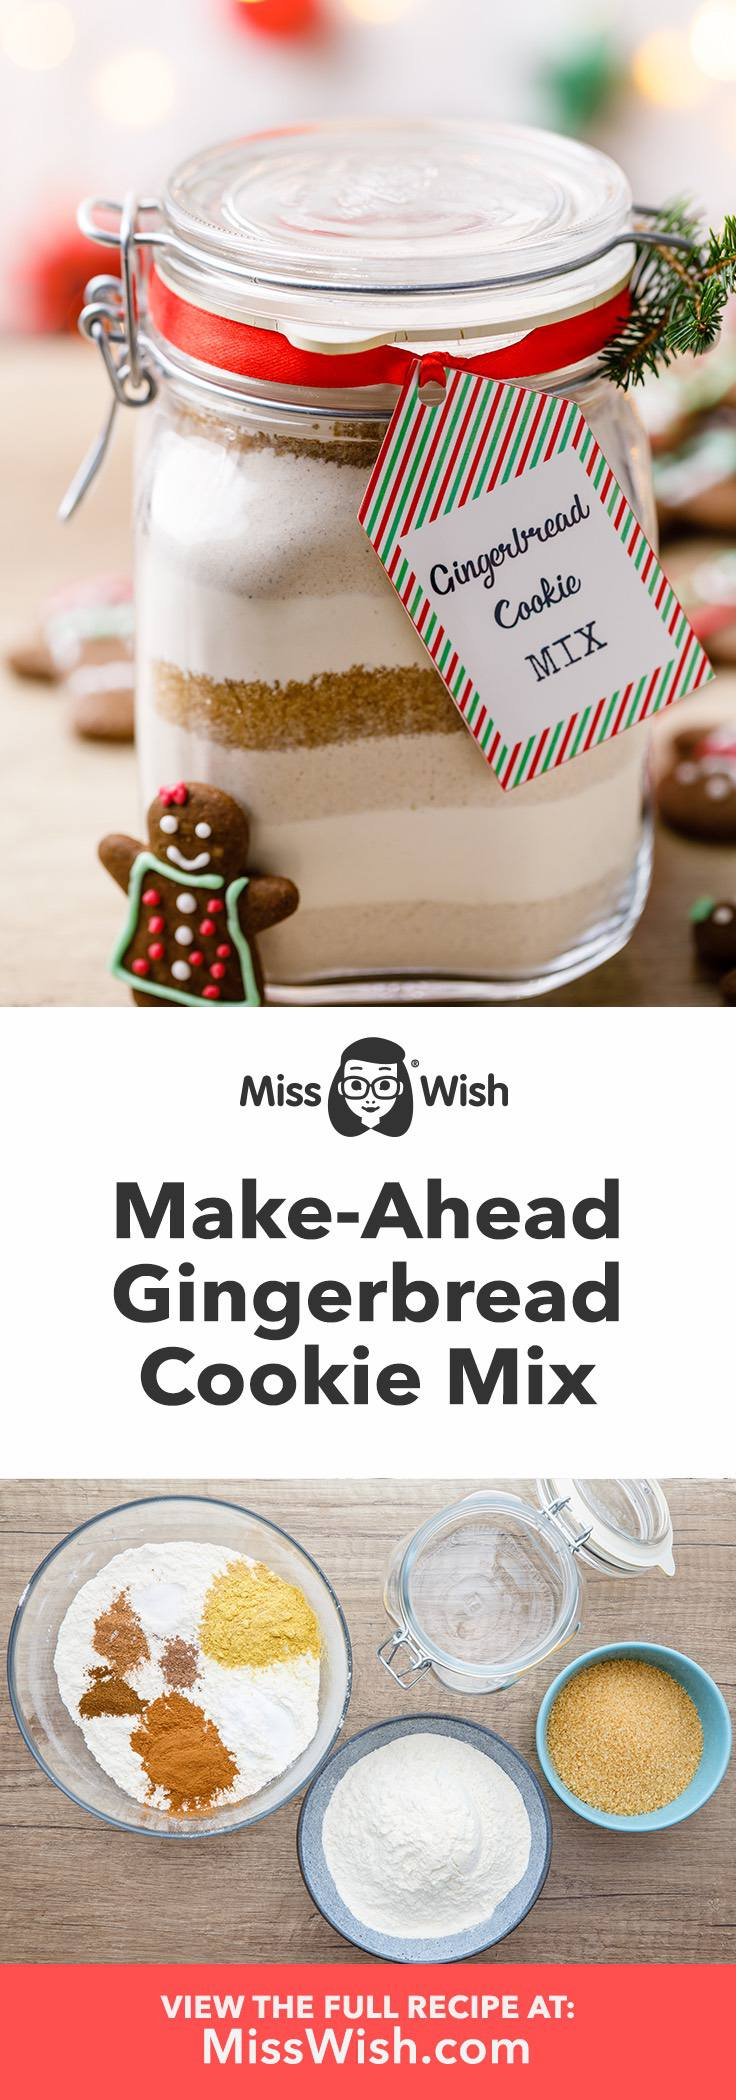 How to make the best gingerbread cookie mix.